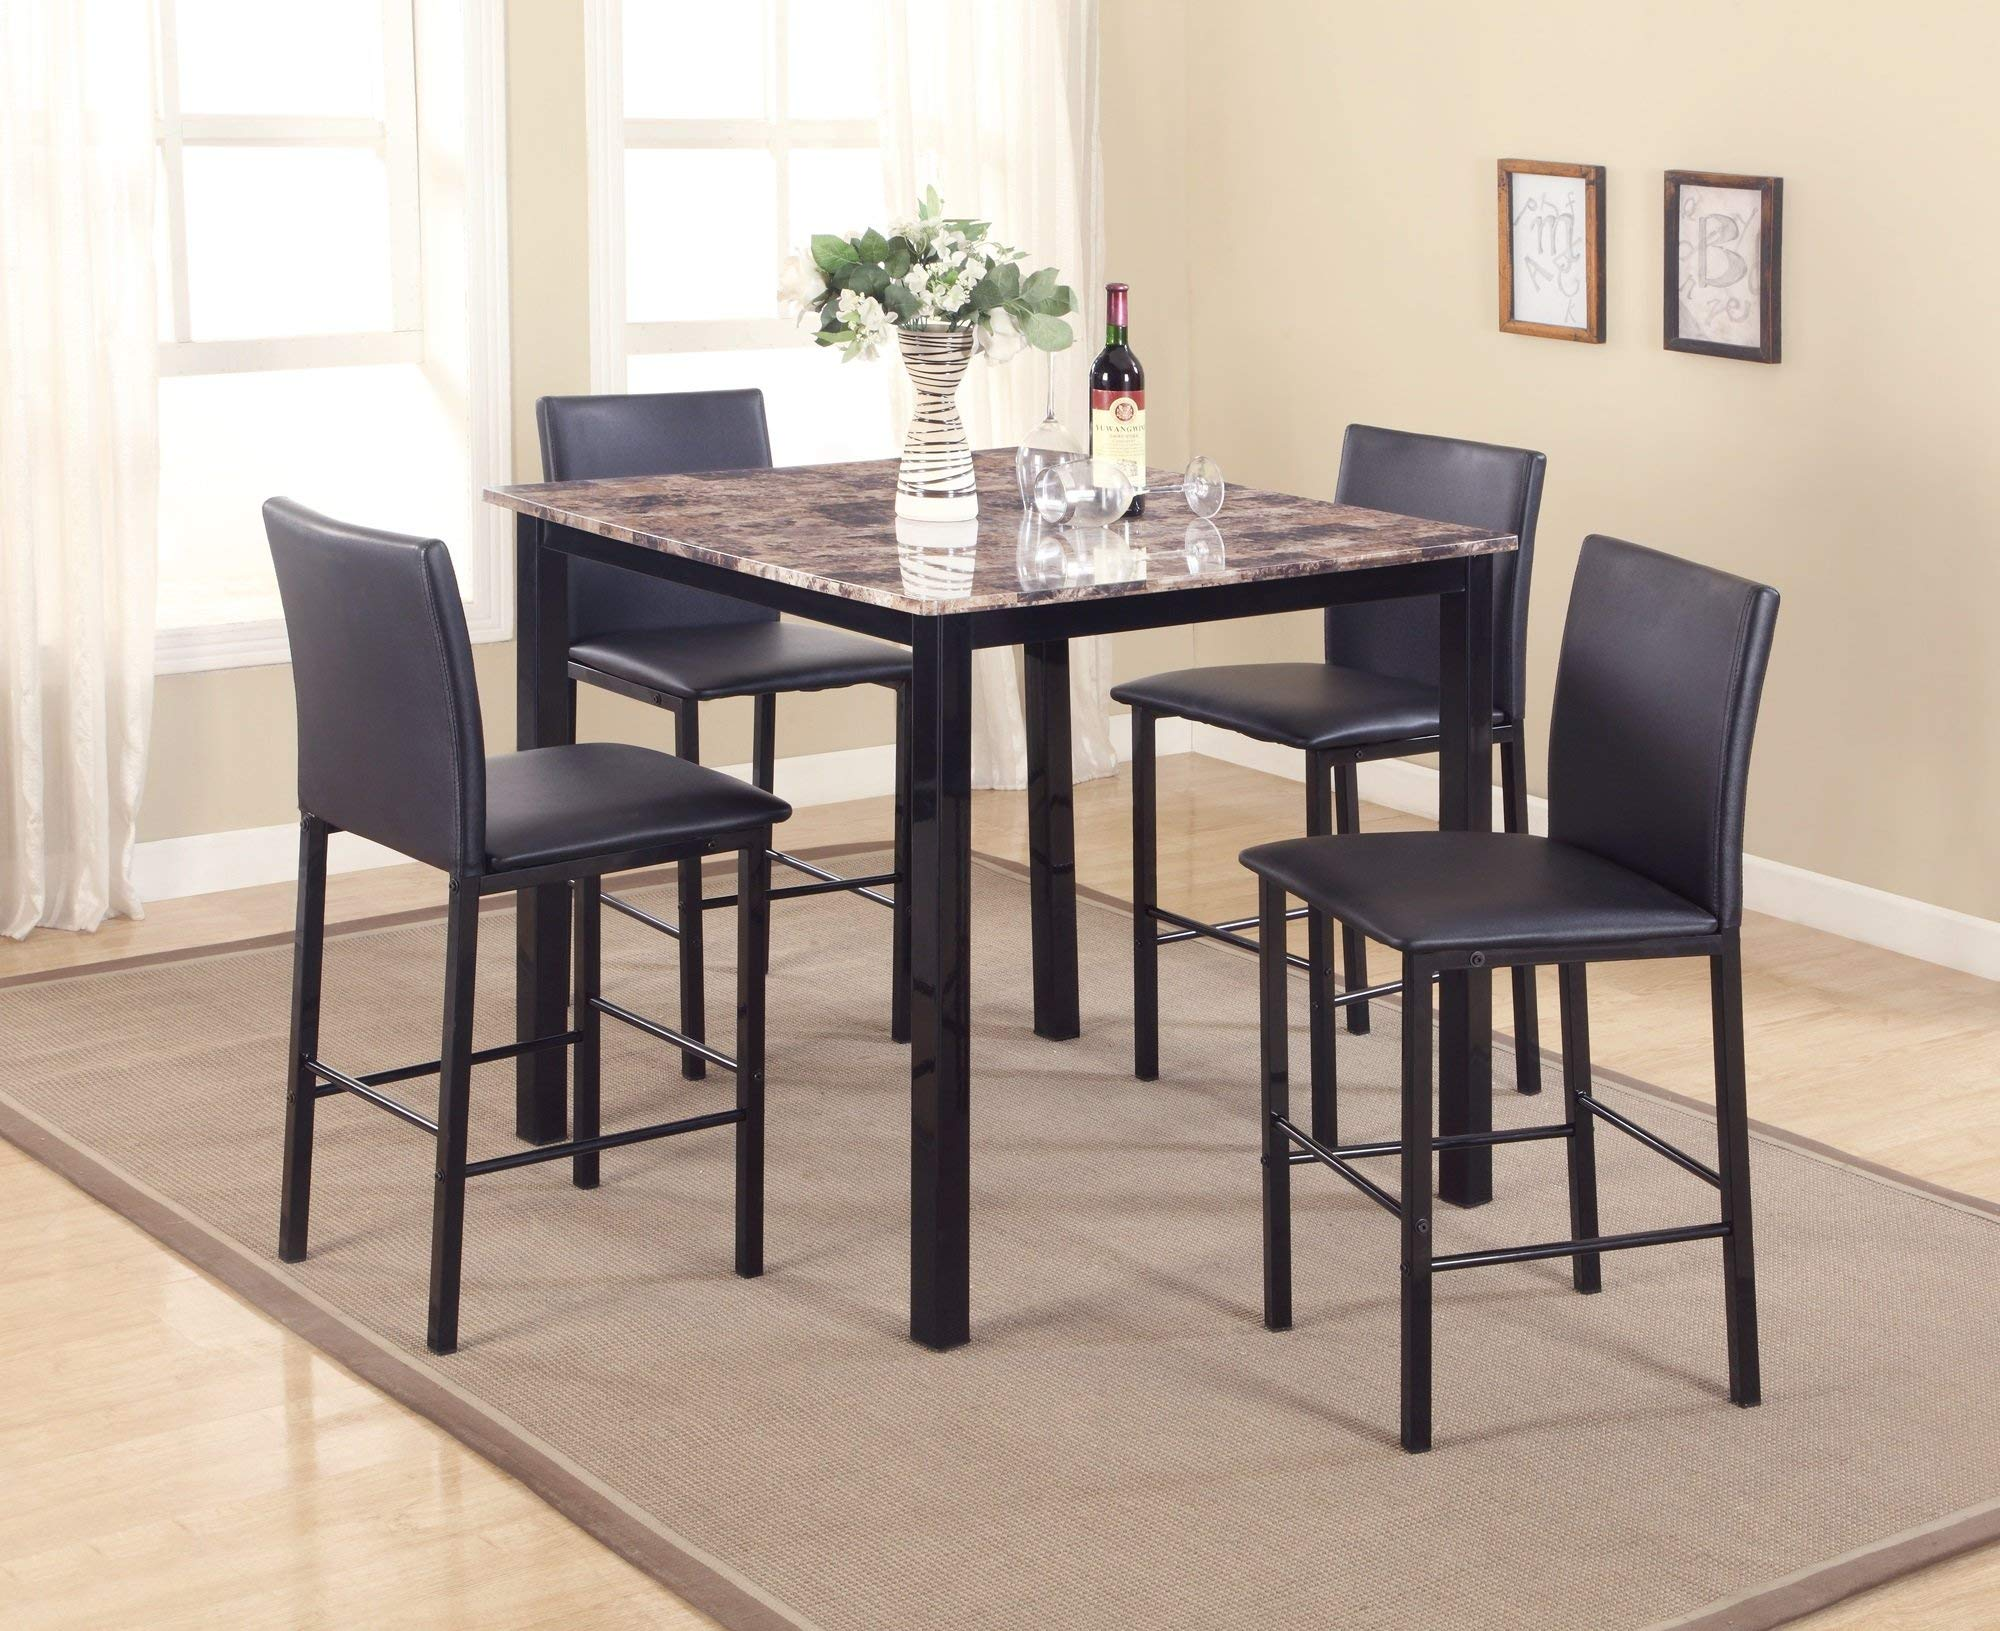 Roundhill Furniture P007BK 5 Piece Citico Counter Height Dining Set with Laminated Faux Marble Top by Roundhill Furniture